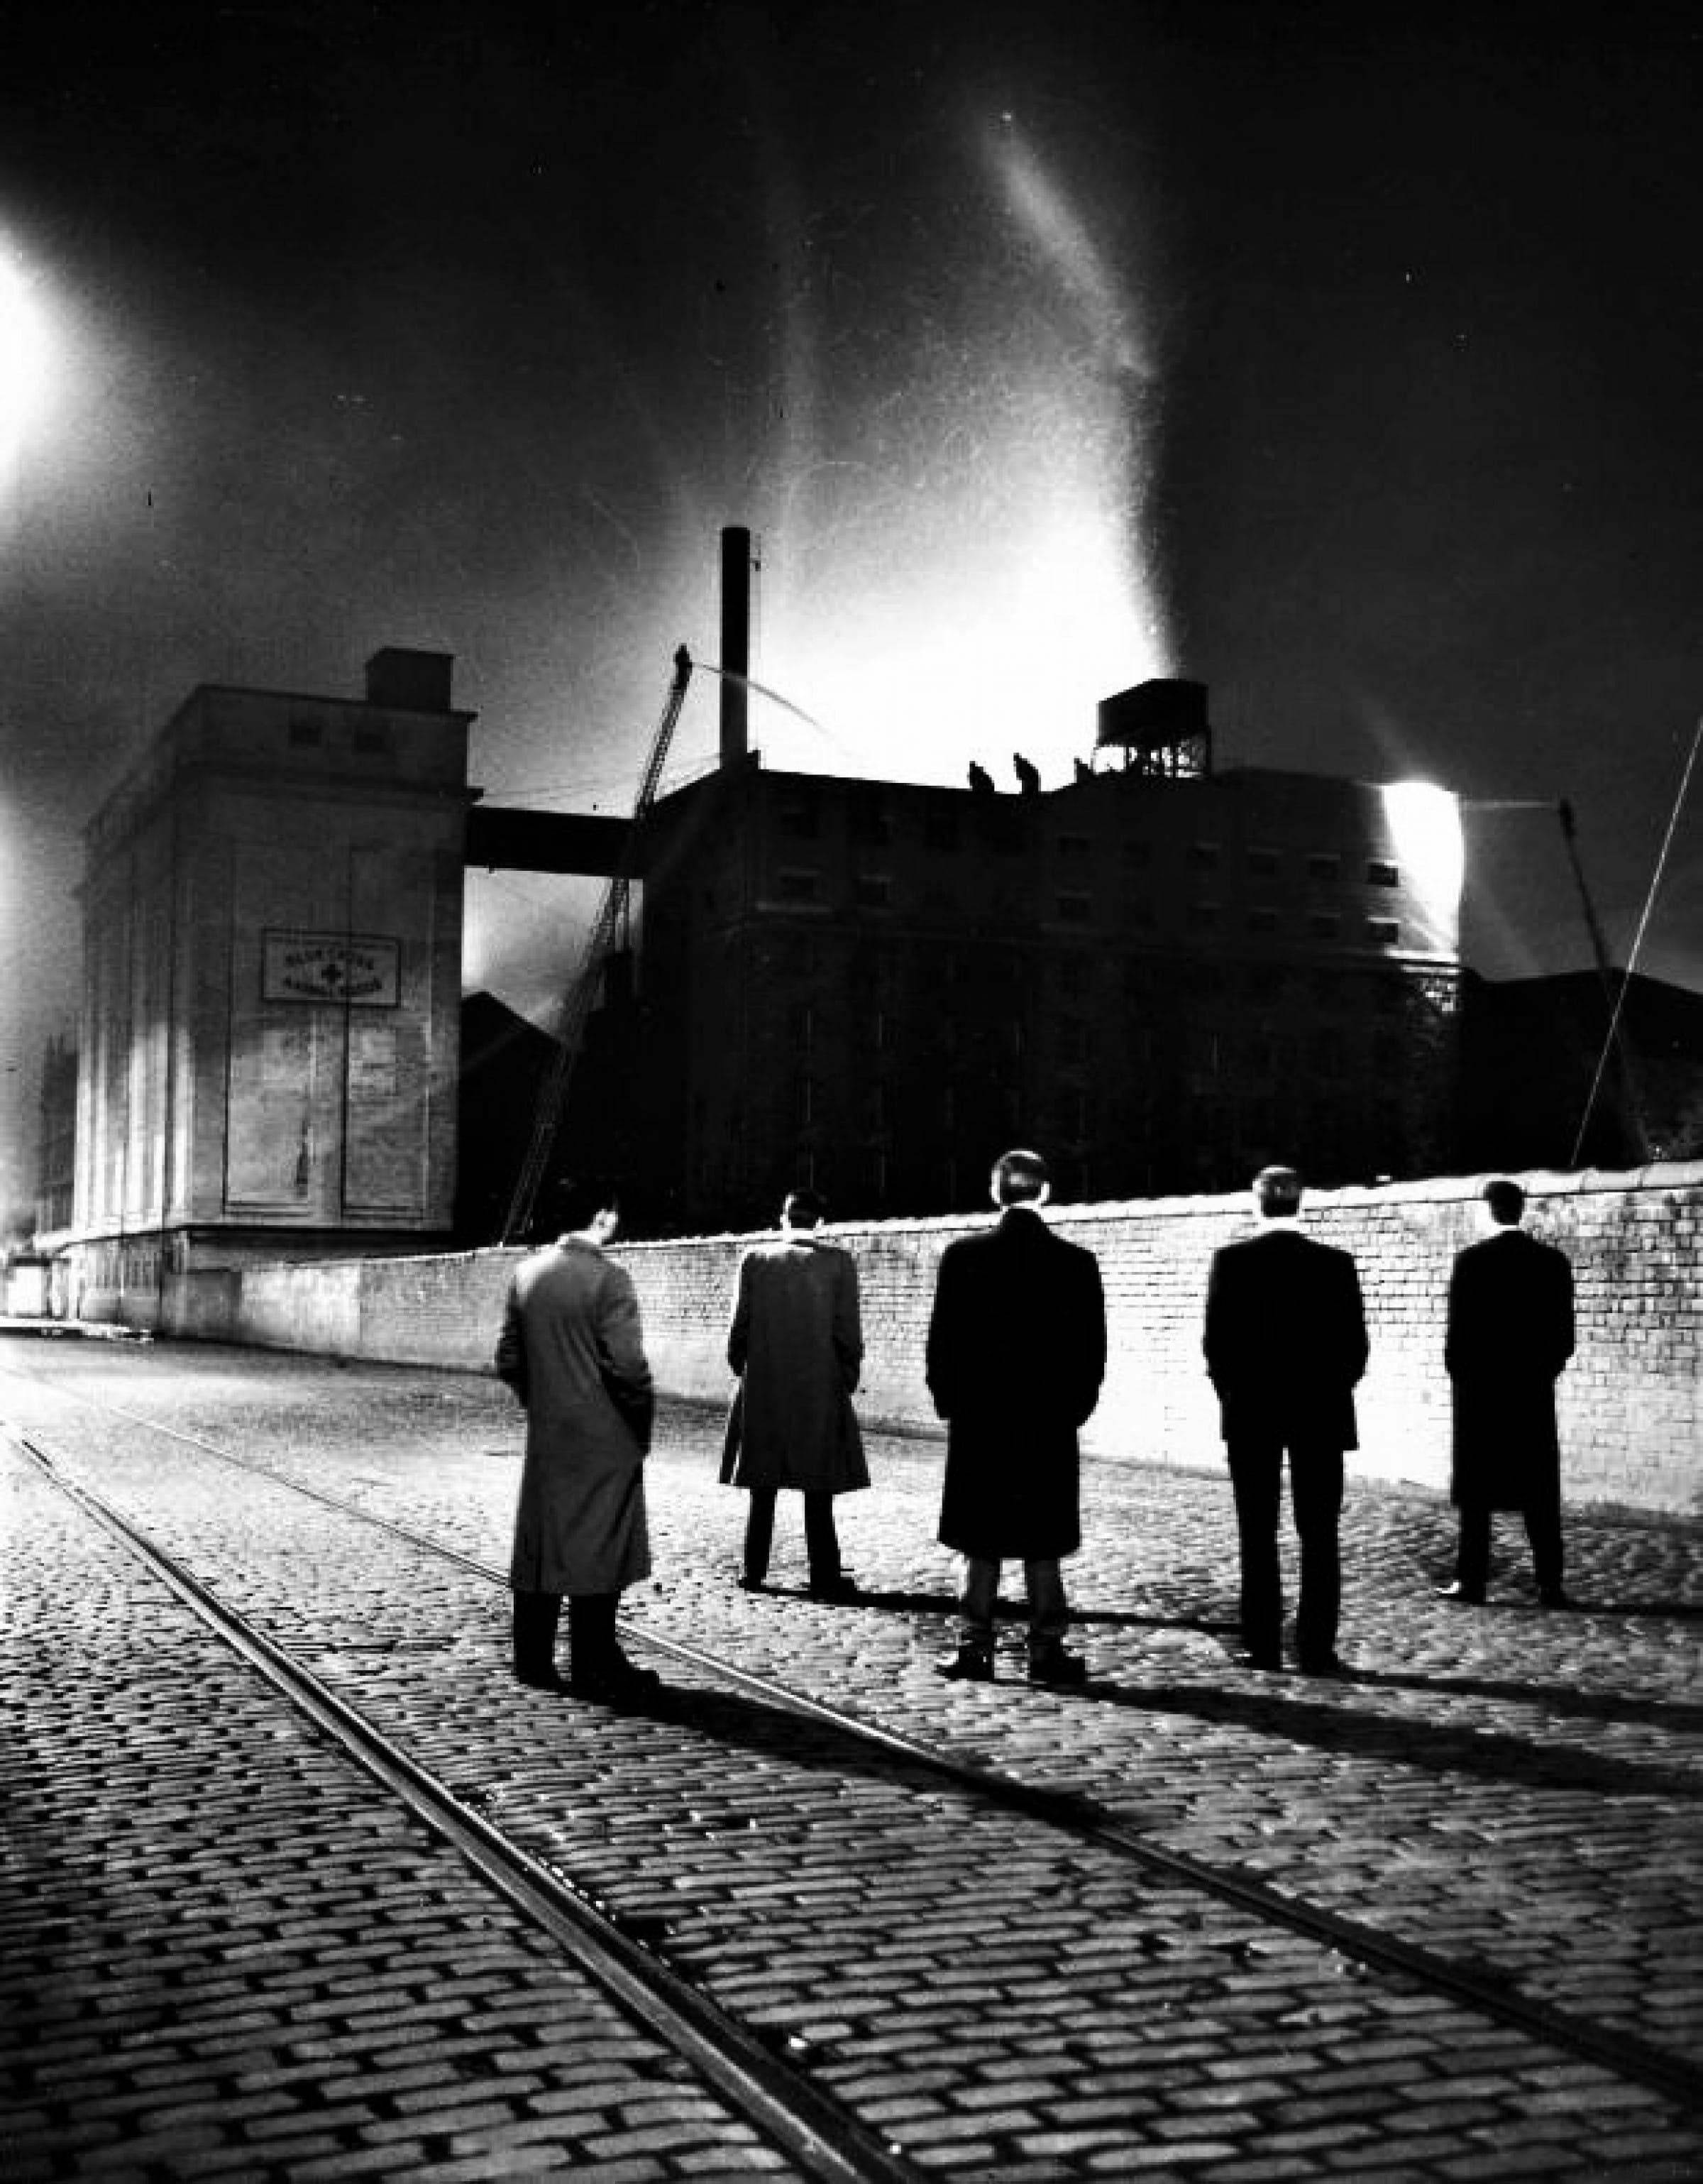 Fire and light... (Fire at the Riverside Mills, Shearer Street, 1957 (Newsquest Media Group))